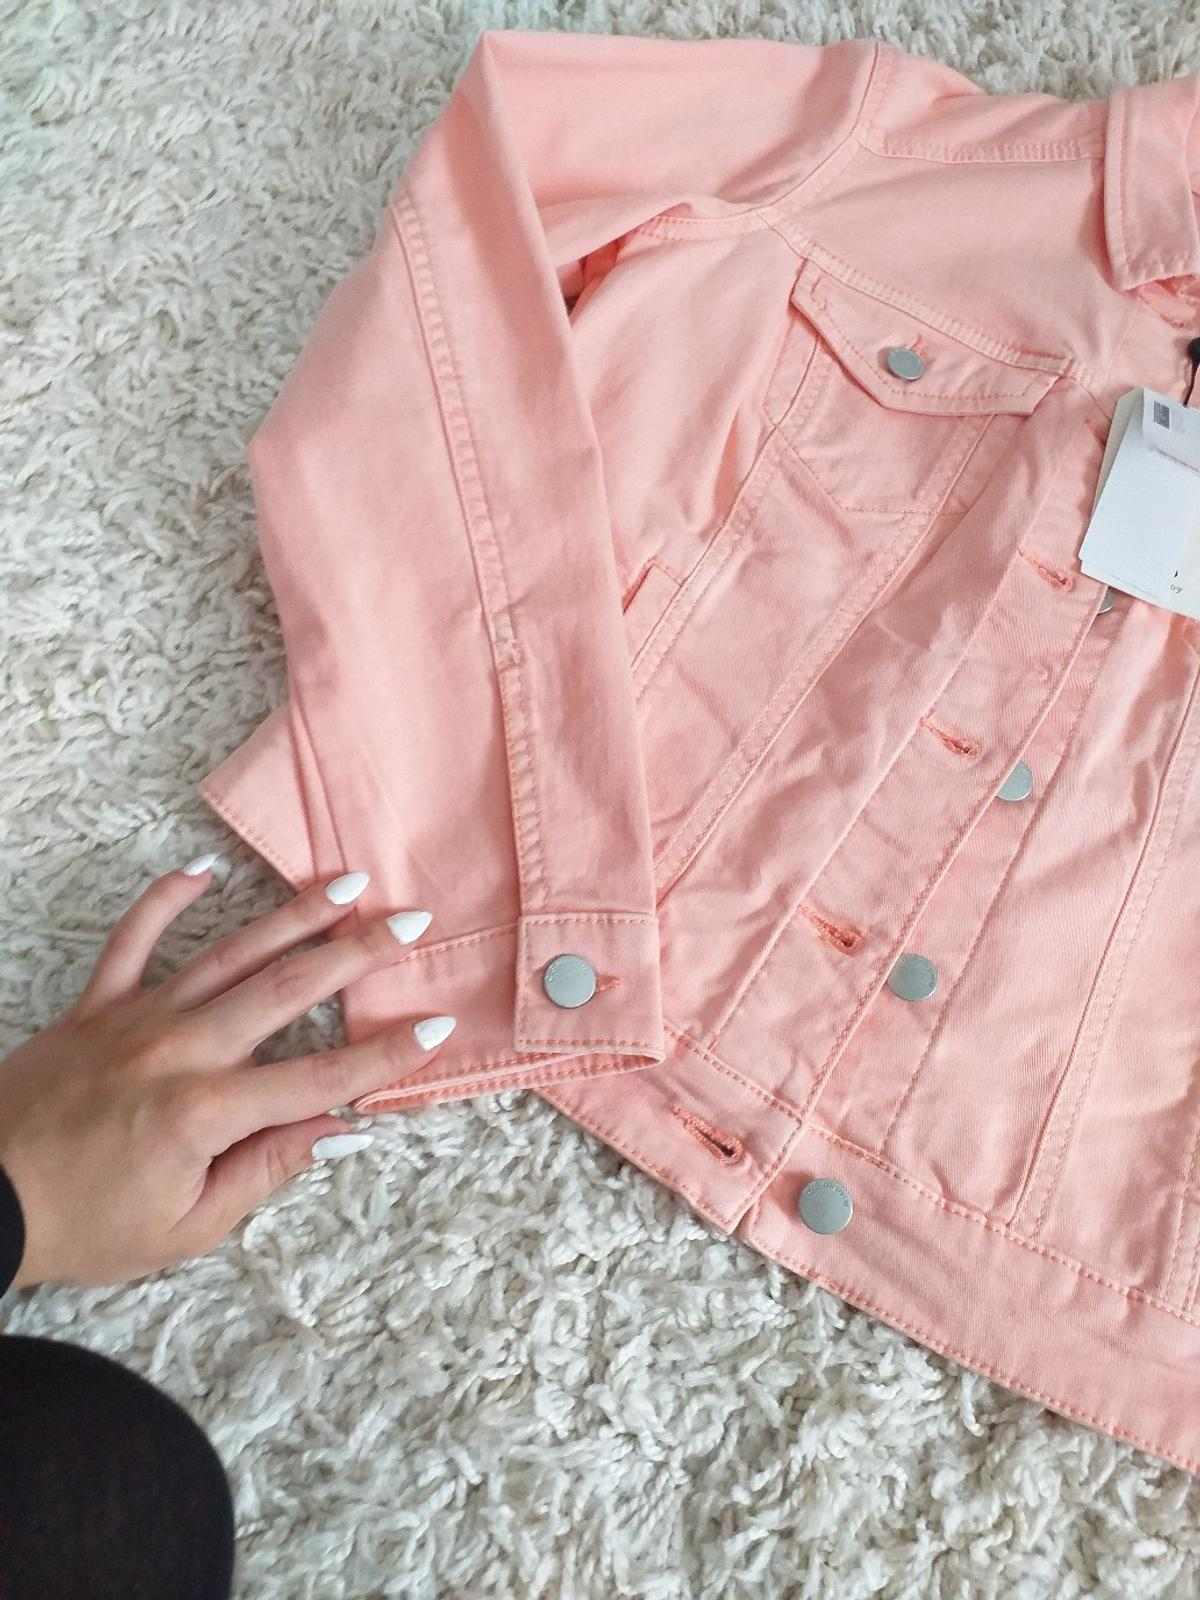 Apricot Farbe Jeansjacke In 96215 Lichtenfels For €40.00 For Sale | Shpock